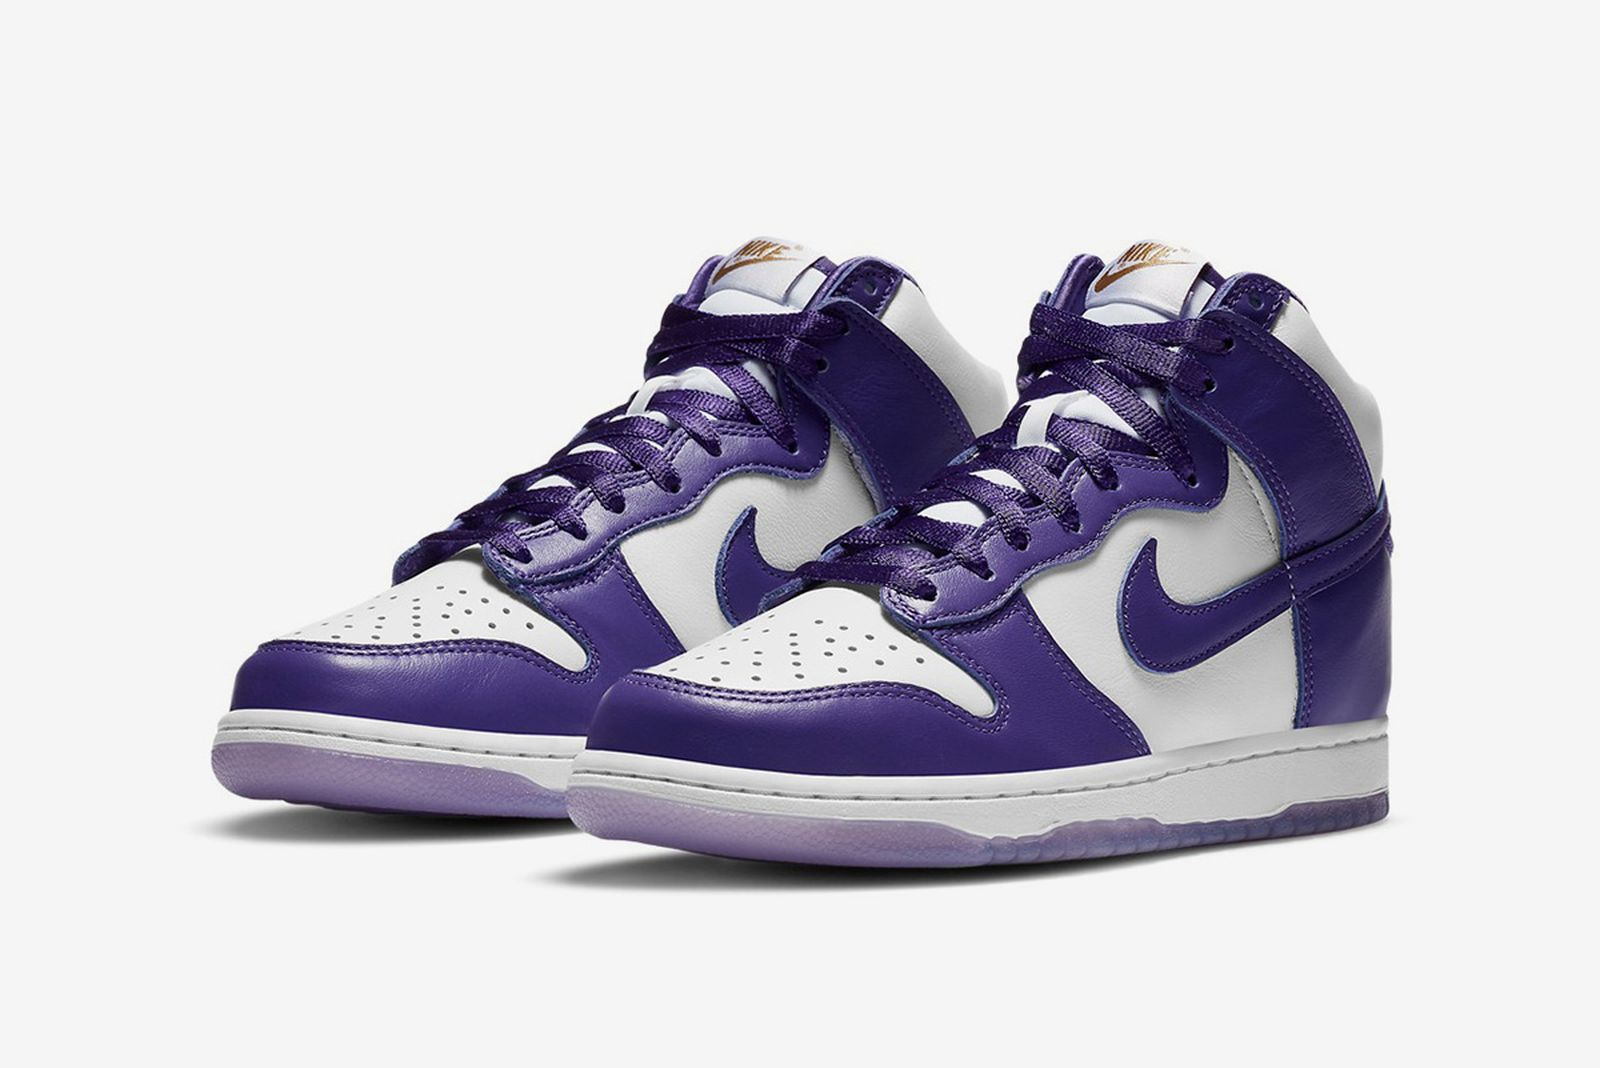 nike-dunk-high-varsity-purple-release-date-price-03